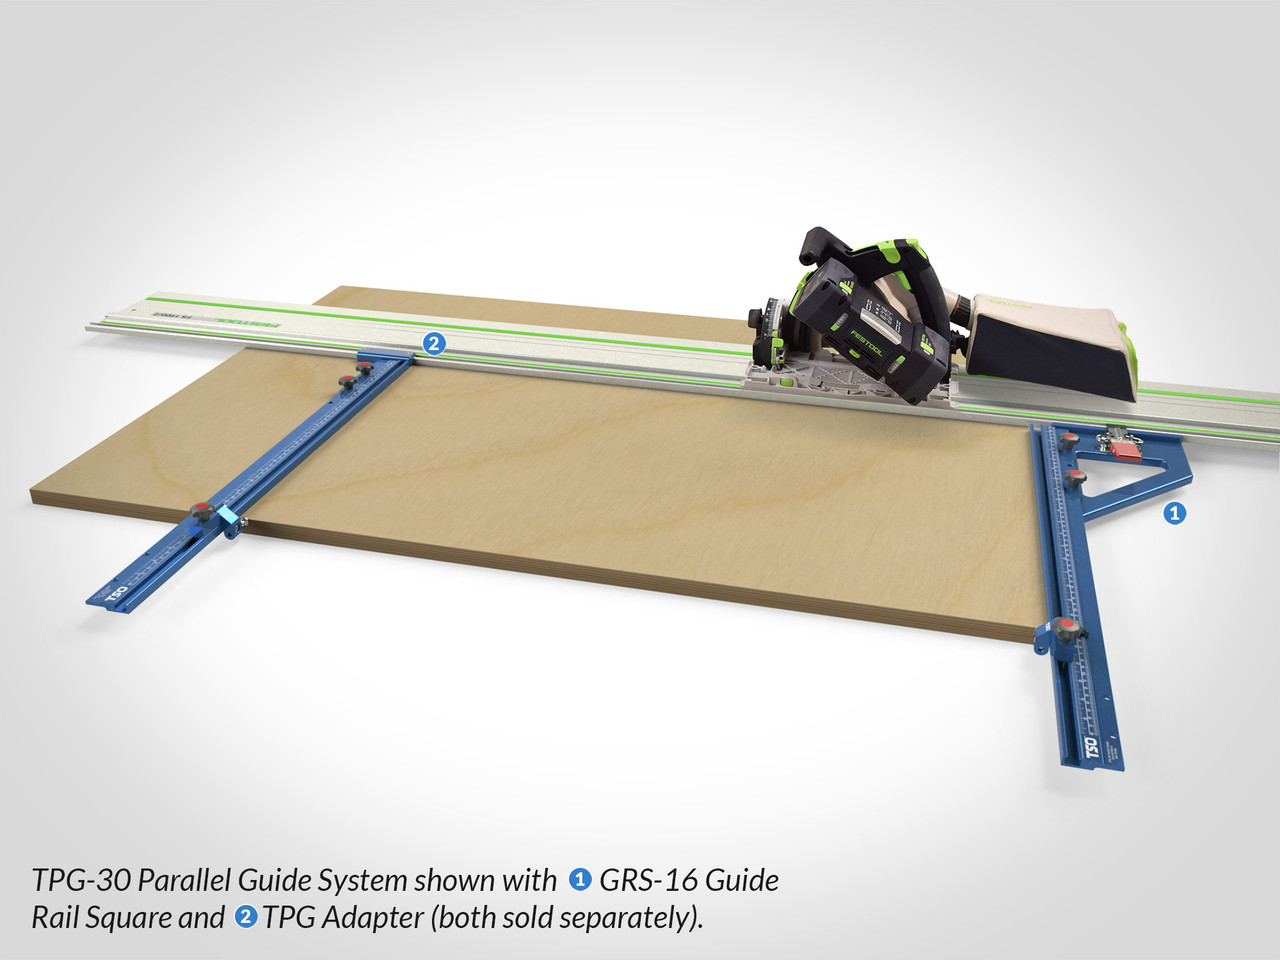 "TPG Parallel Guide System shown with 30"" T-tracks, with a GRS-16"" Guide Rail Square (right) TPG Adapter (left) for rock-solid guide rail connections."